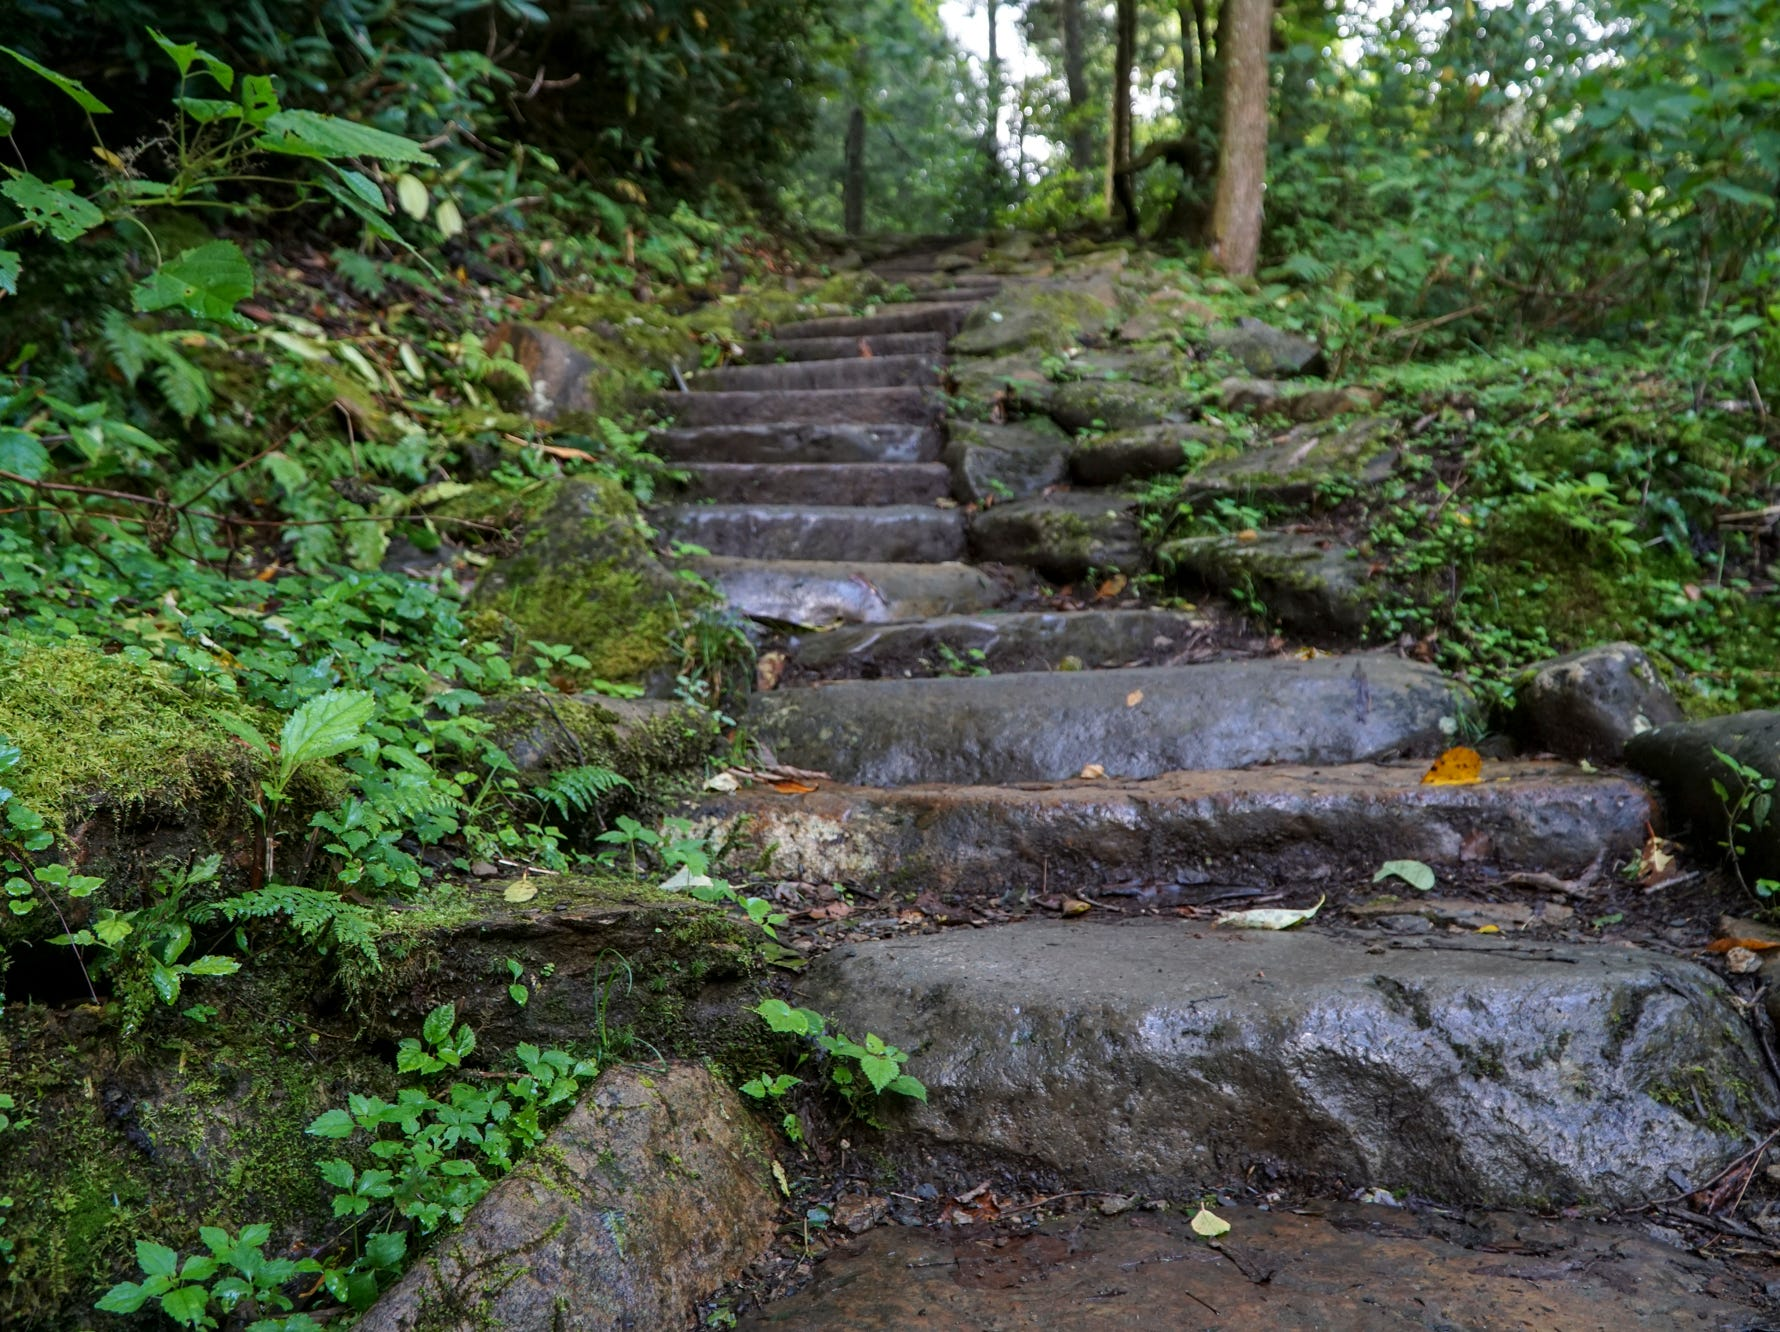 Stone stairs make for a moderately challenging climb of the Chimney Tops trail, despite its short length of just under 3.5 miles.